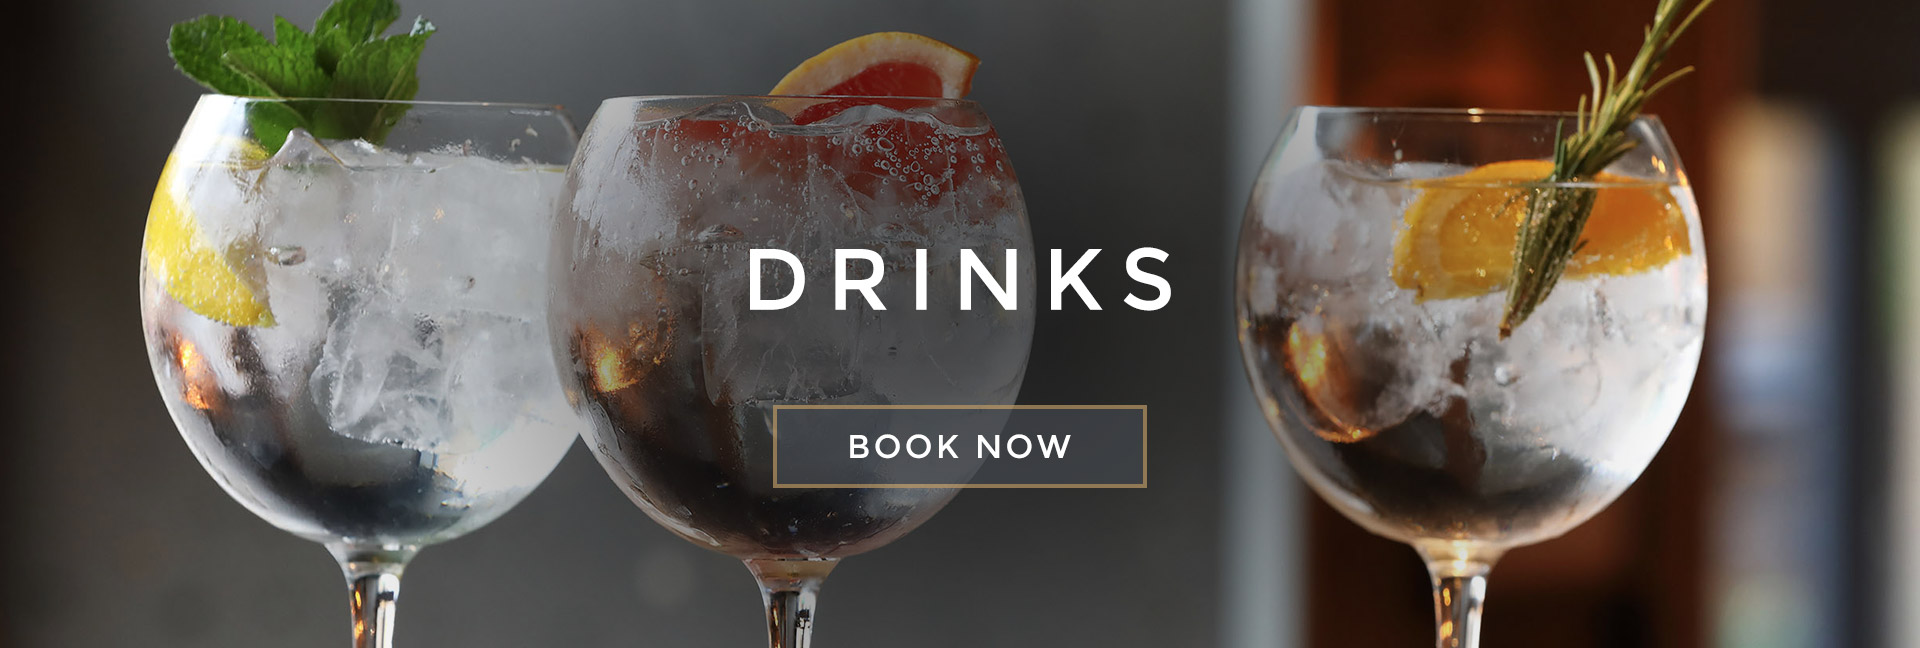 Drinks at All Bar One Victoria - Book your table